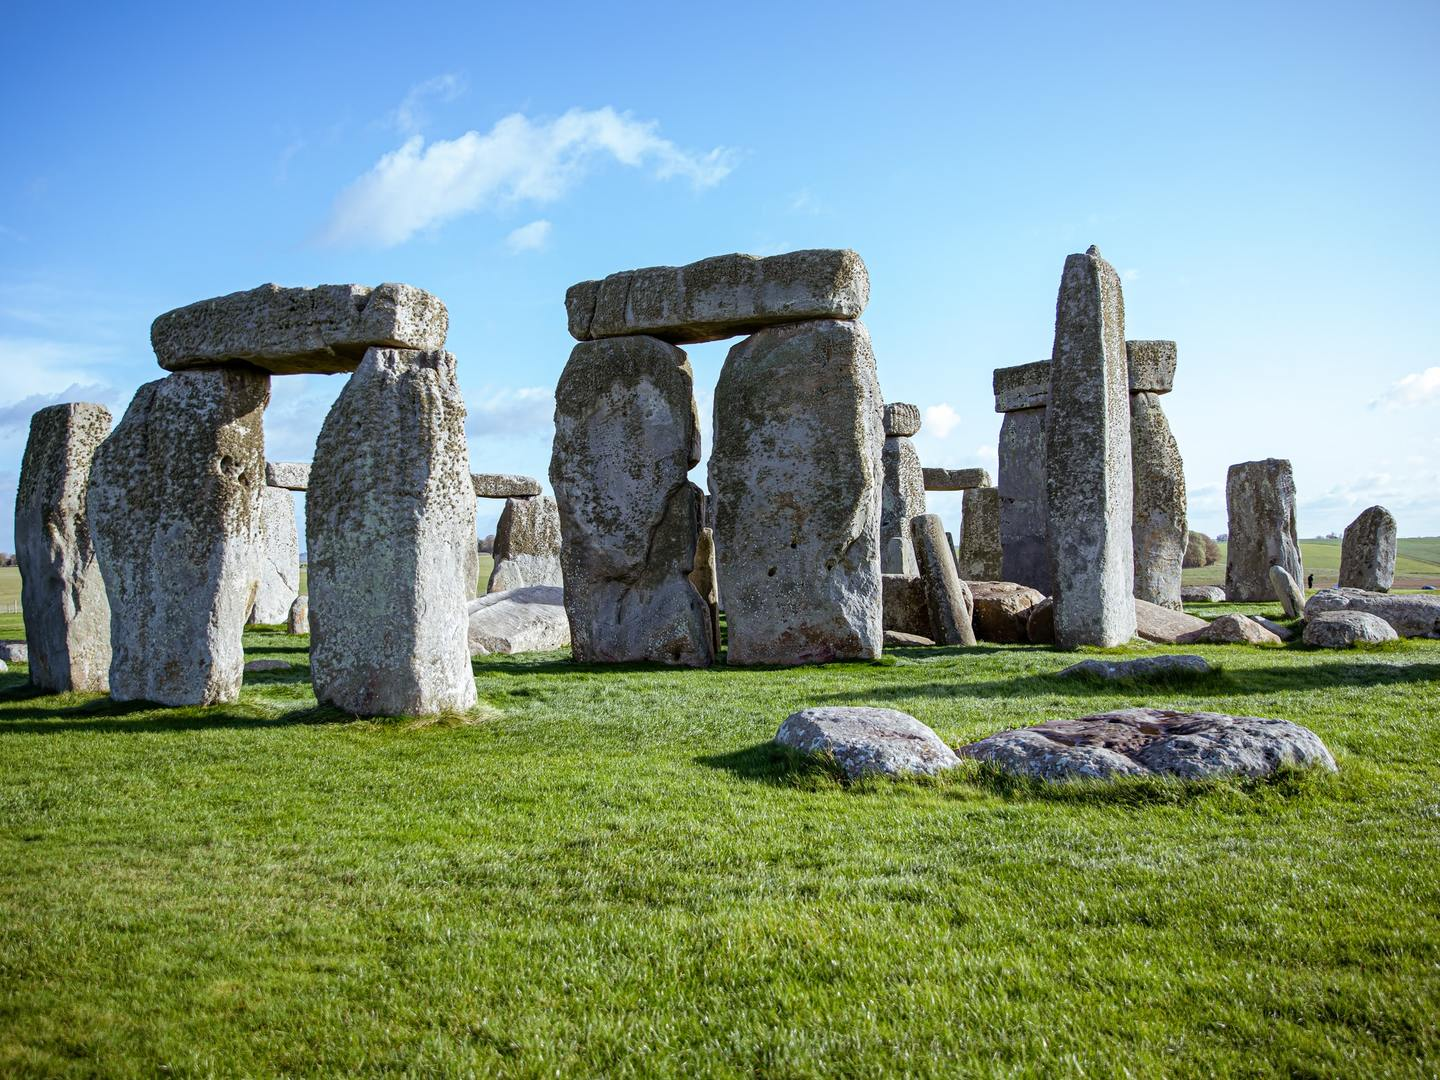 The iconic Stonehenge is accessible from the port of Portland, UK